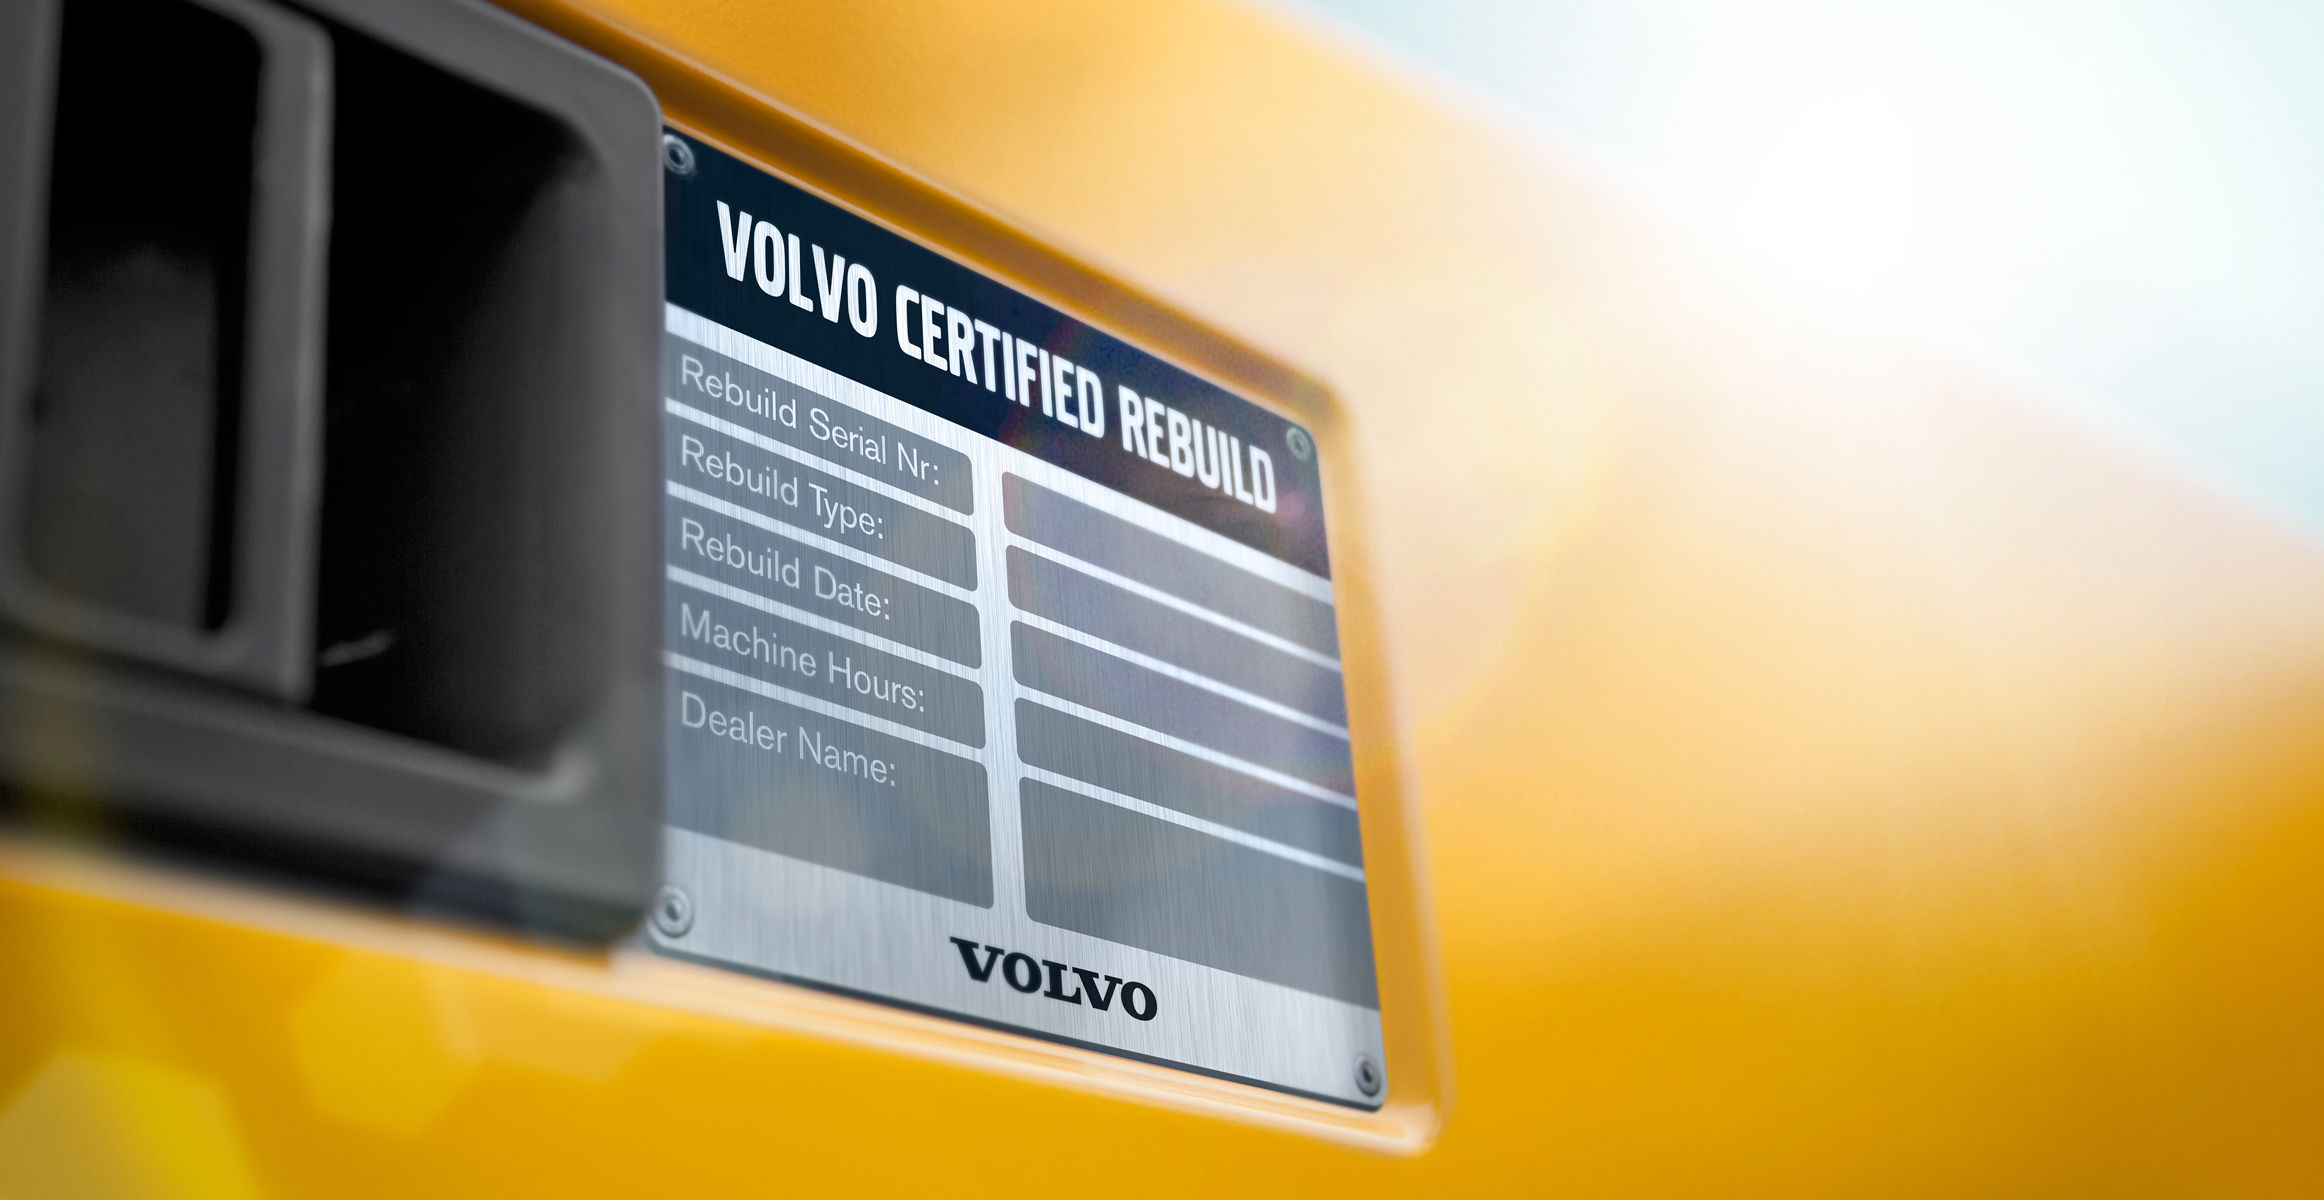 Certified Rebuild Program breathes new life into Volvo machines